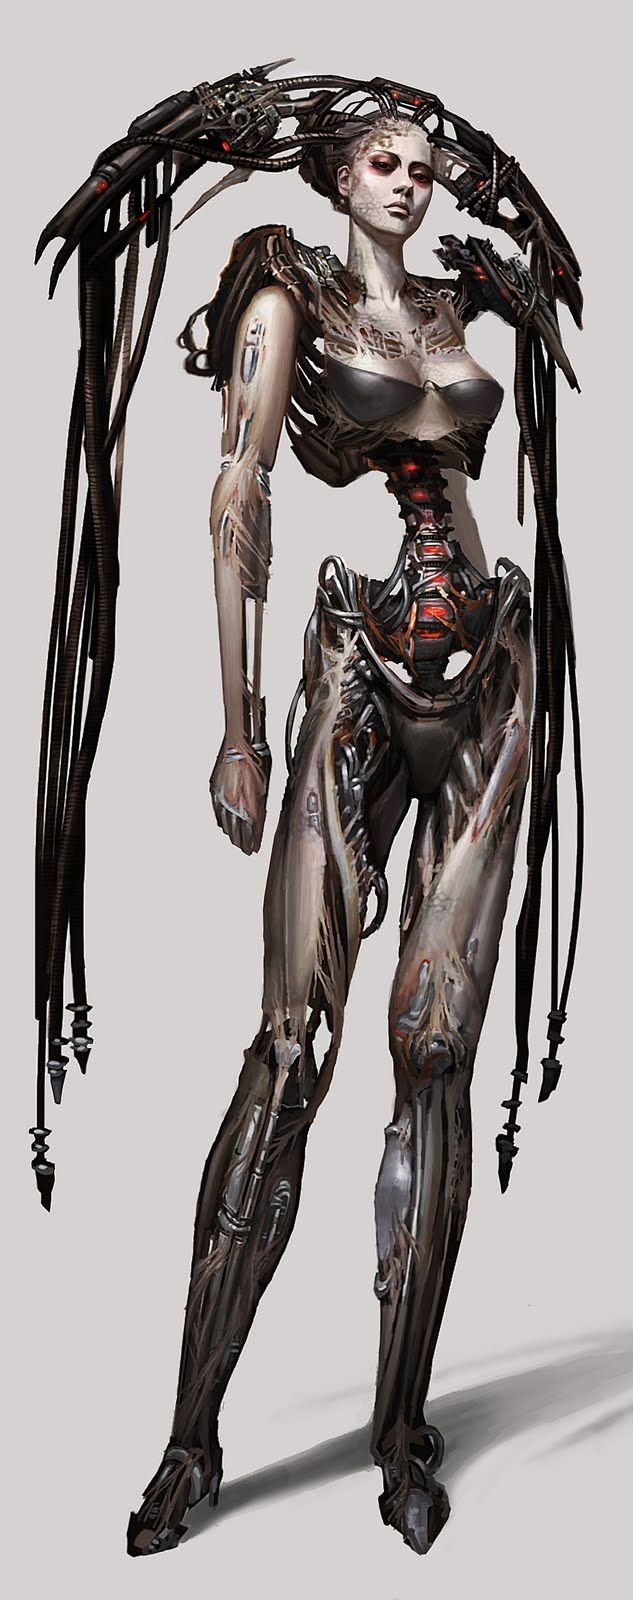 borg queen concept art for star trek online <3